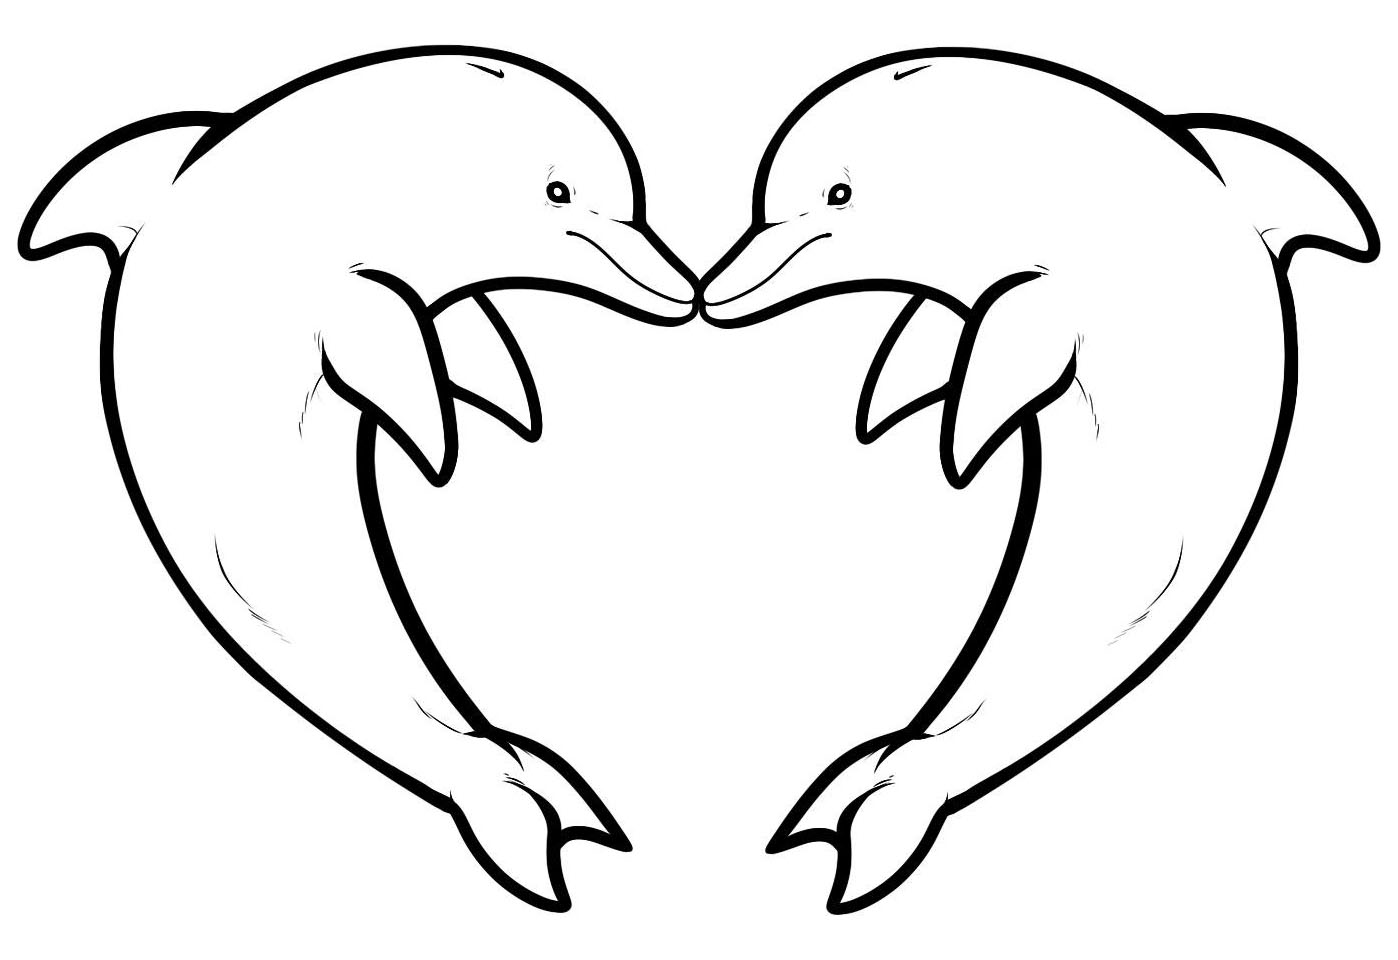 Two Dolphins Forming A Heart Animals Coloring Pages For Adults